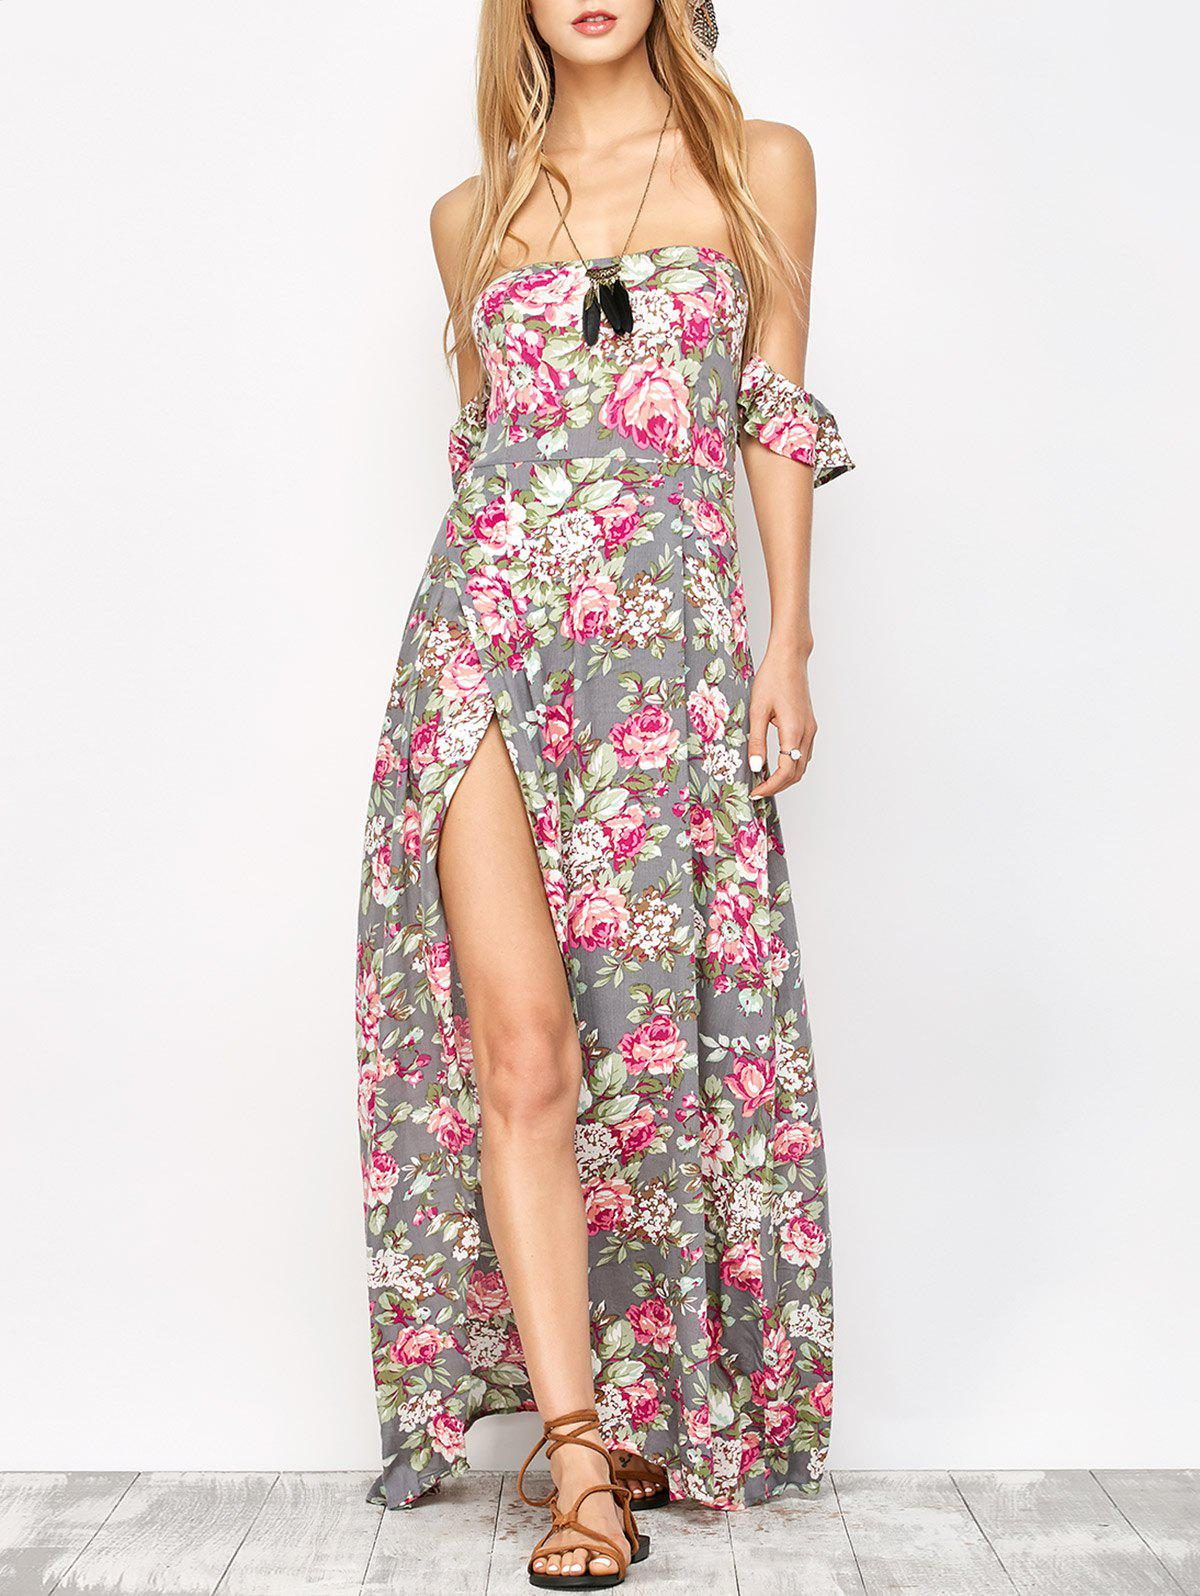 Chic Maxi Bandeau Floral Beach Dress with Slit